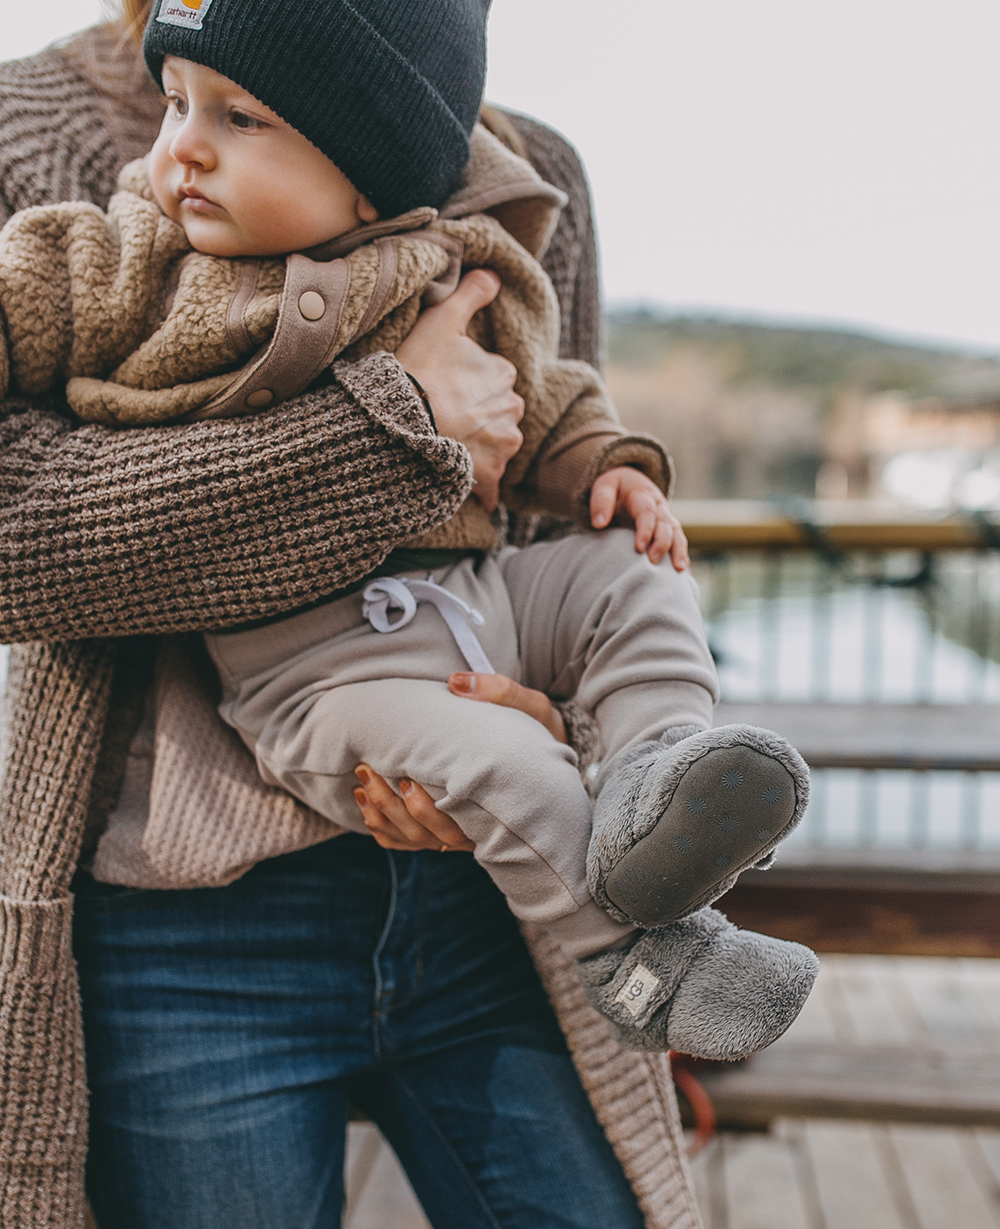 livvyland-blog-olivia-watson-austin-texas-lifestyle-motherhood-blogger-mozarts-coffee-patagonia-cardigan-off-country-cardigan-infant-uggs-bixbee-booties